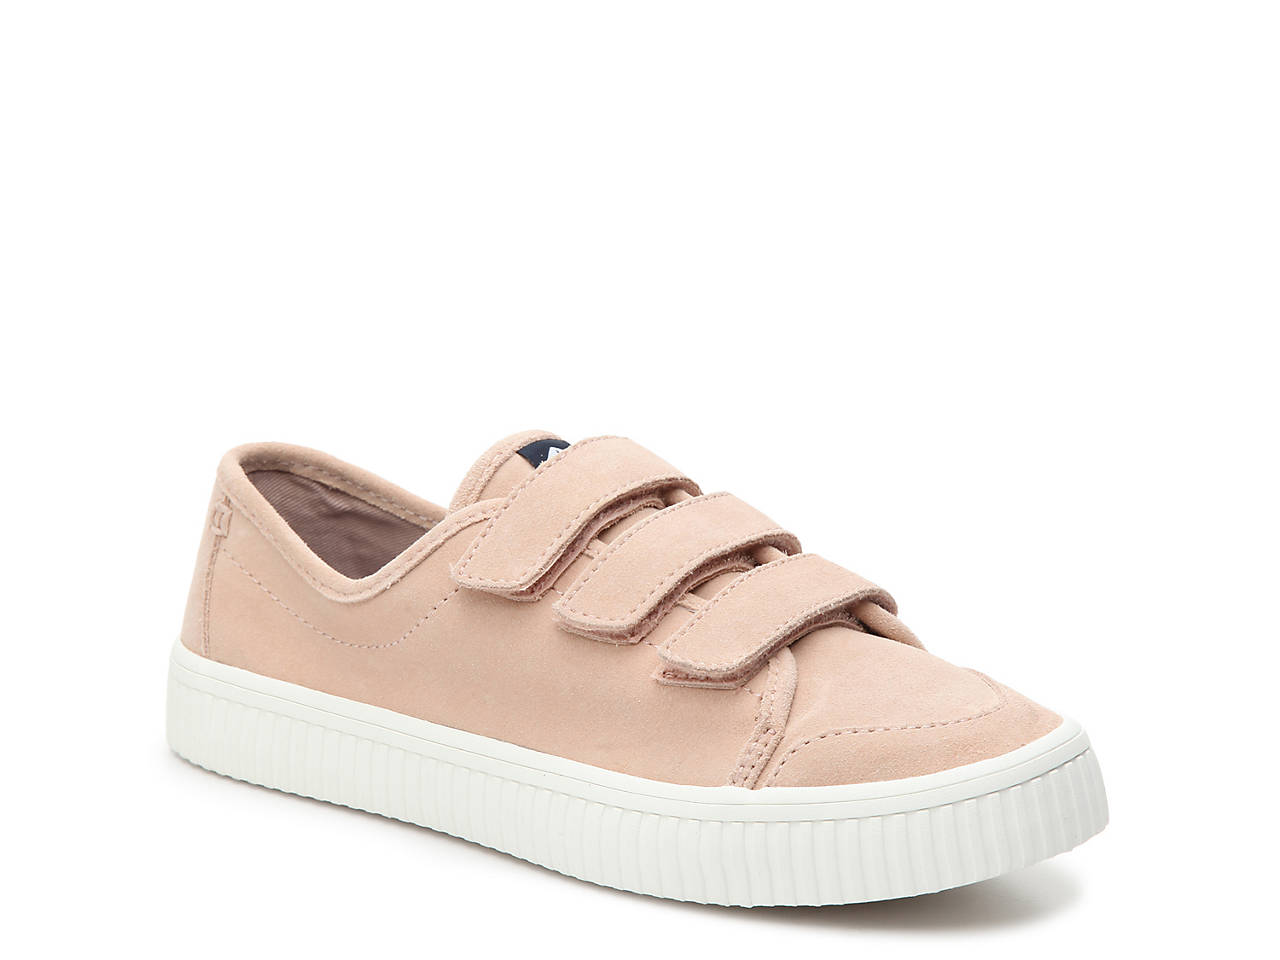 0a8689f9d9b Sperry Top-Sider Crest Vibe Creeper Sneaker Women s Shoes